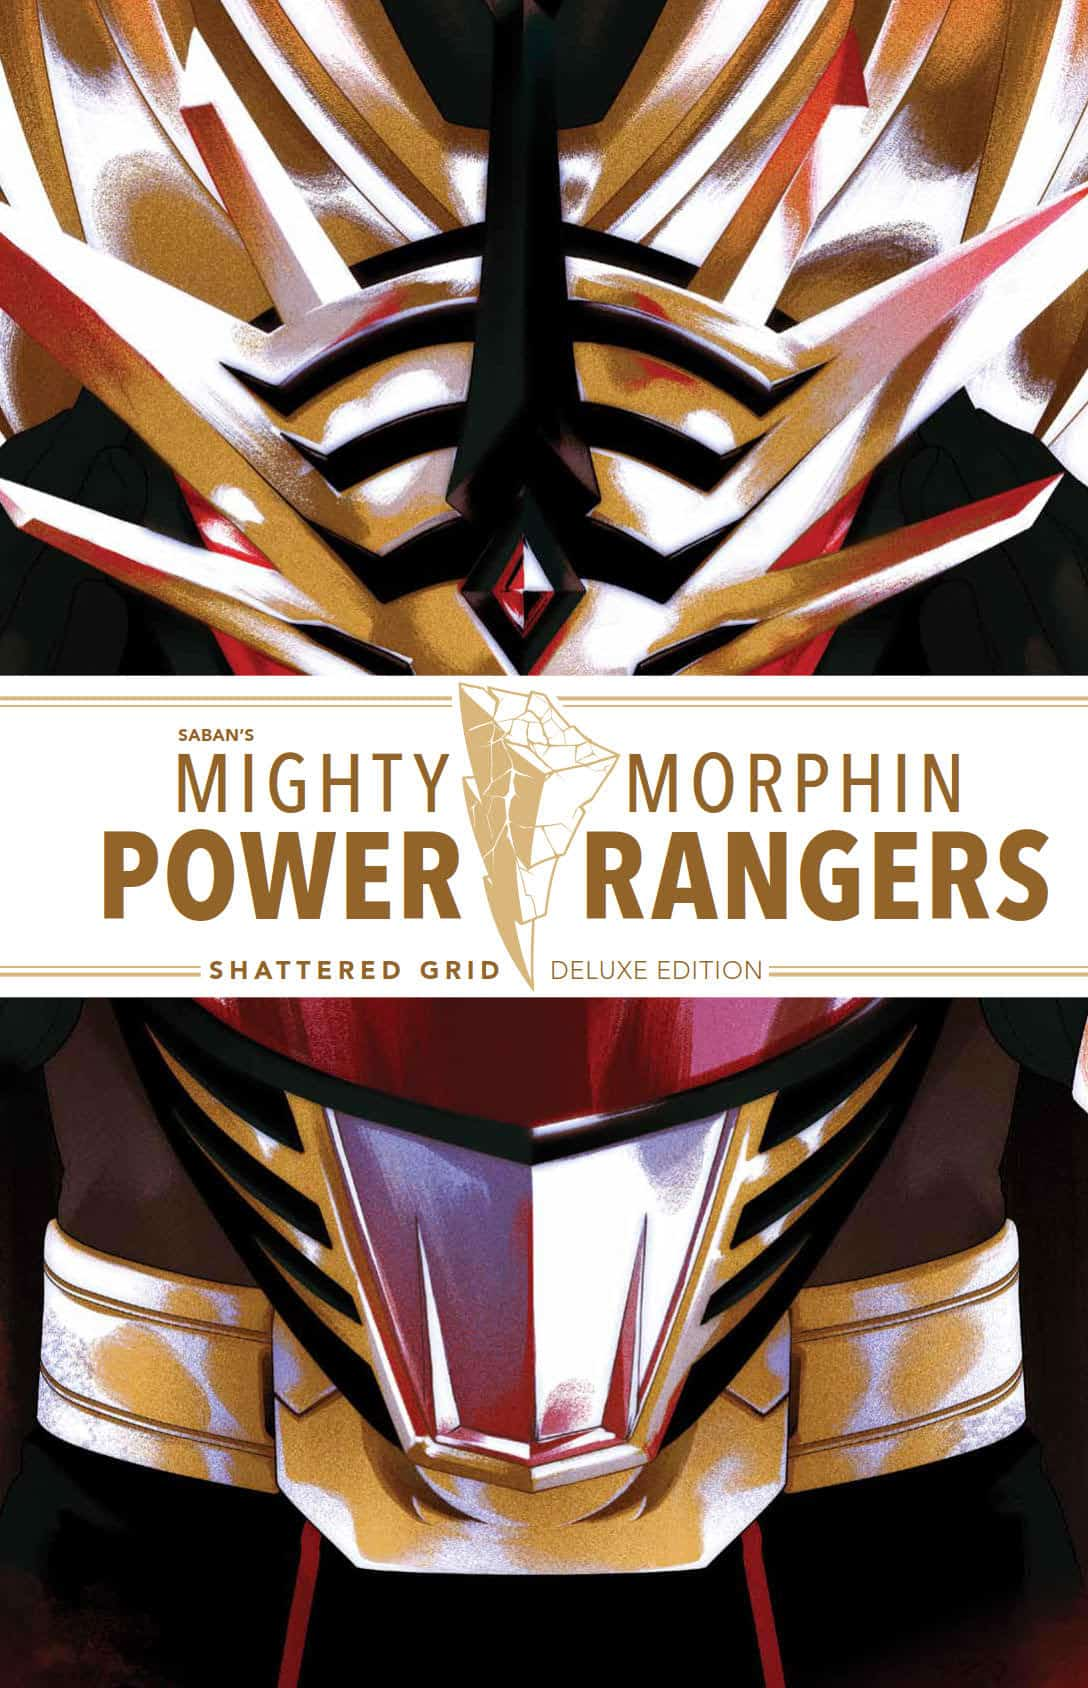 Mighty Morphin Power Rangers: Shattered Grid Deluxe Edition HC